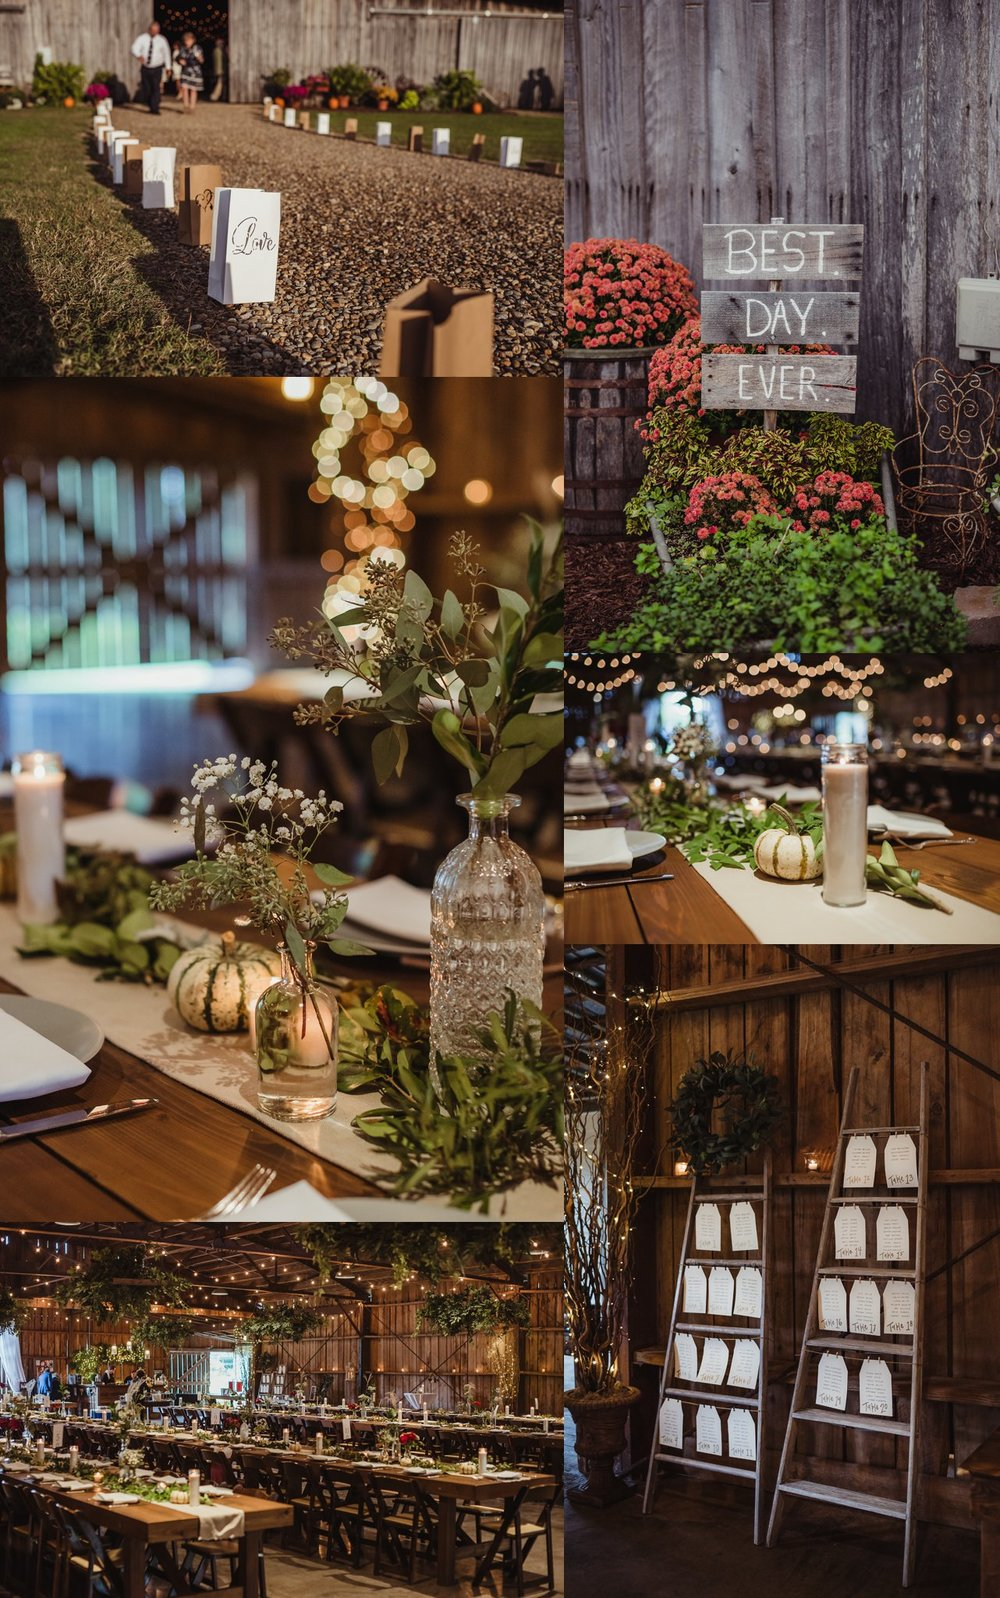 Details of the wedding reception at the Little Herb House in Raleigh, North Carolina include lots of candles, autumn decor, paper lanterns outside the barn, and rustic decor. Photo by Rose Trail Images.